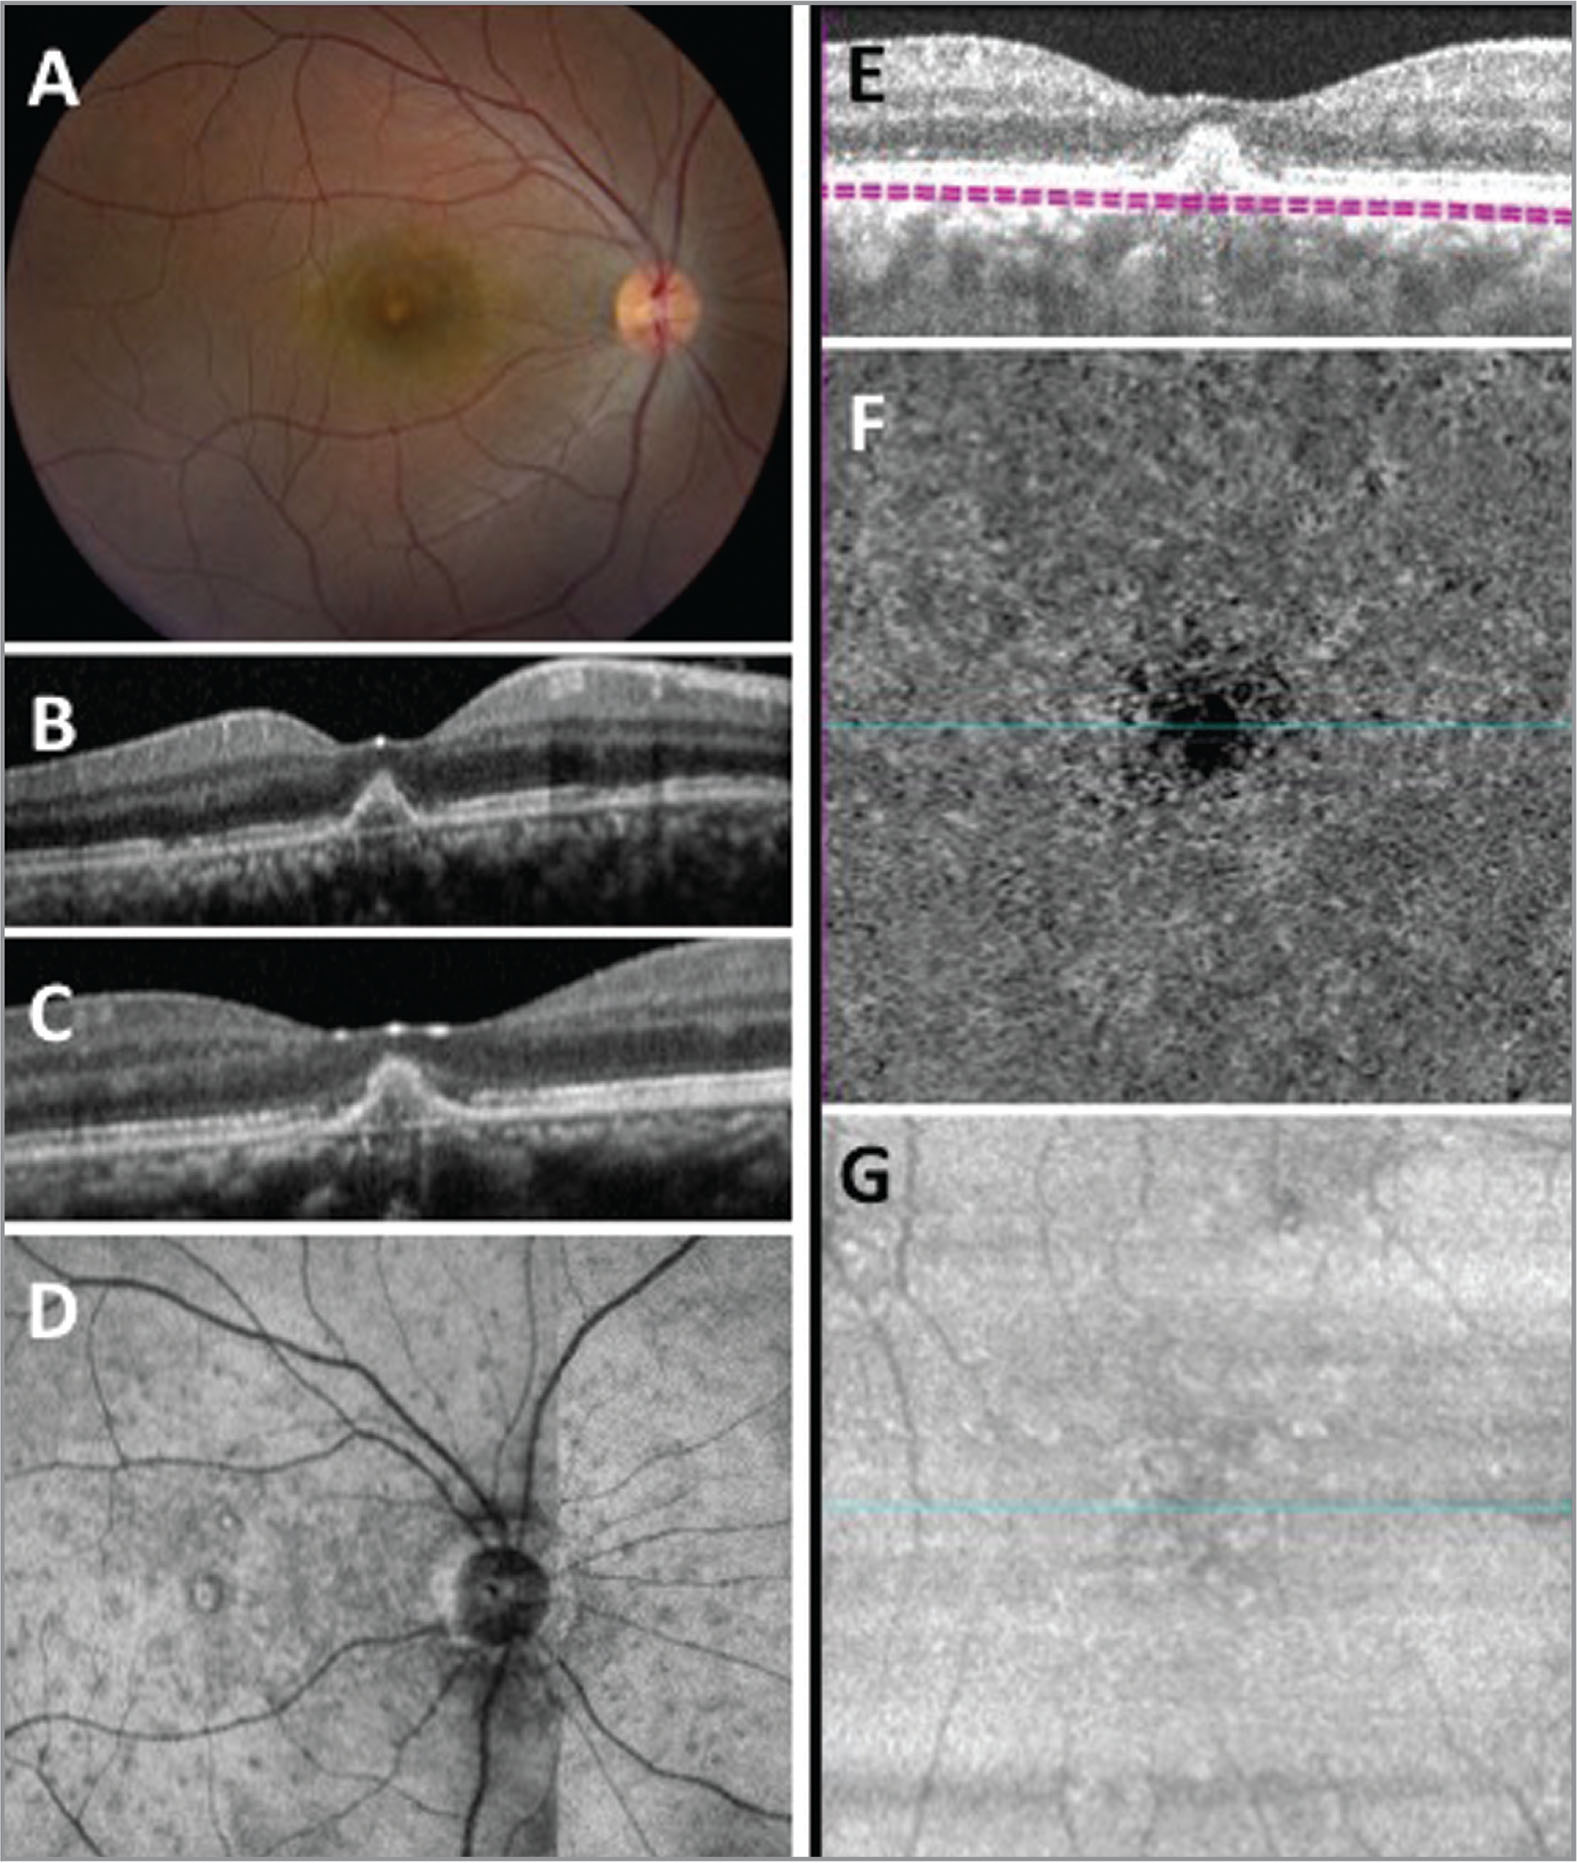 Imaging from 2 and 3 weeks after presentation. (A) Color fundus images from 2 weeks after presentation showing a change in the configuration of the pigment epithelial detachment (PED). (B) Spectral-domain optical coherence tomography (SD-OCT) imaging showing some recovery of the outer retinal ellipsoid zone with a change in the configuration of the lesion. (C) Three weeks after initial presentation, SD-OCT imaging showing recovery of outer retina with a persistent deposit. (D) En face outer retinal slab of the ellipsoid zone measure 20 μm to 40 μm above the retinal pigment epithelial layer showing improvement of the ellipsoid zone when compared with Figure 1D. (E) Cross-sectional B-scan from the swept-source OCT angiography scans with the boundary segmentation for the slab encompassing the choriocapillaris shown in (F) and (G). (F) En face flow image corresponding to the choriocapillaris layer demonstrating persistent loss of choriocapillaris flow beneath the deposit. (G) En face structural image corresponding to the choriocapillaris layer showing an intact signal.